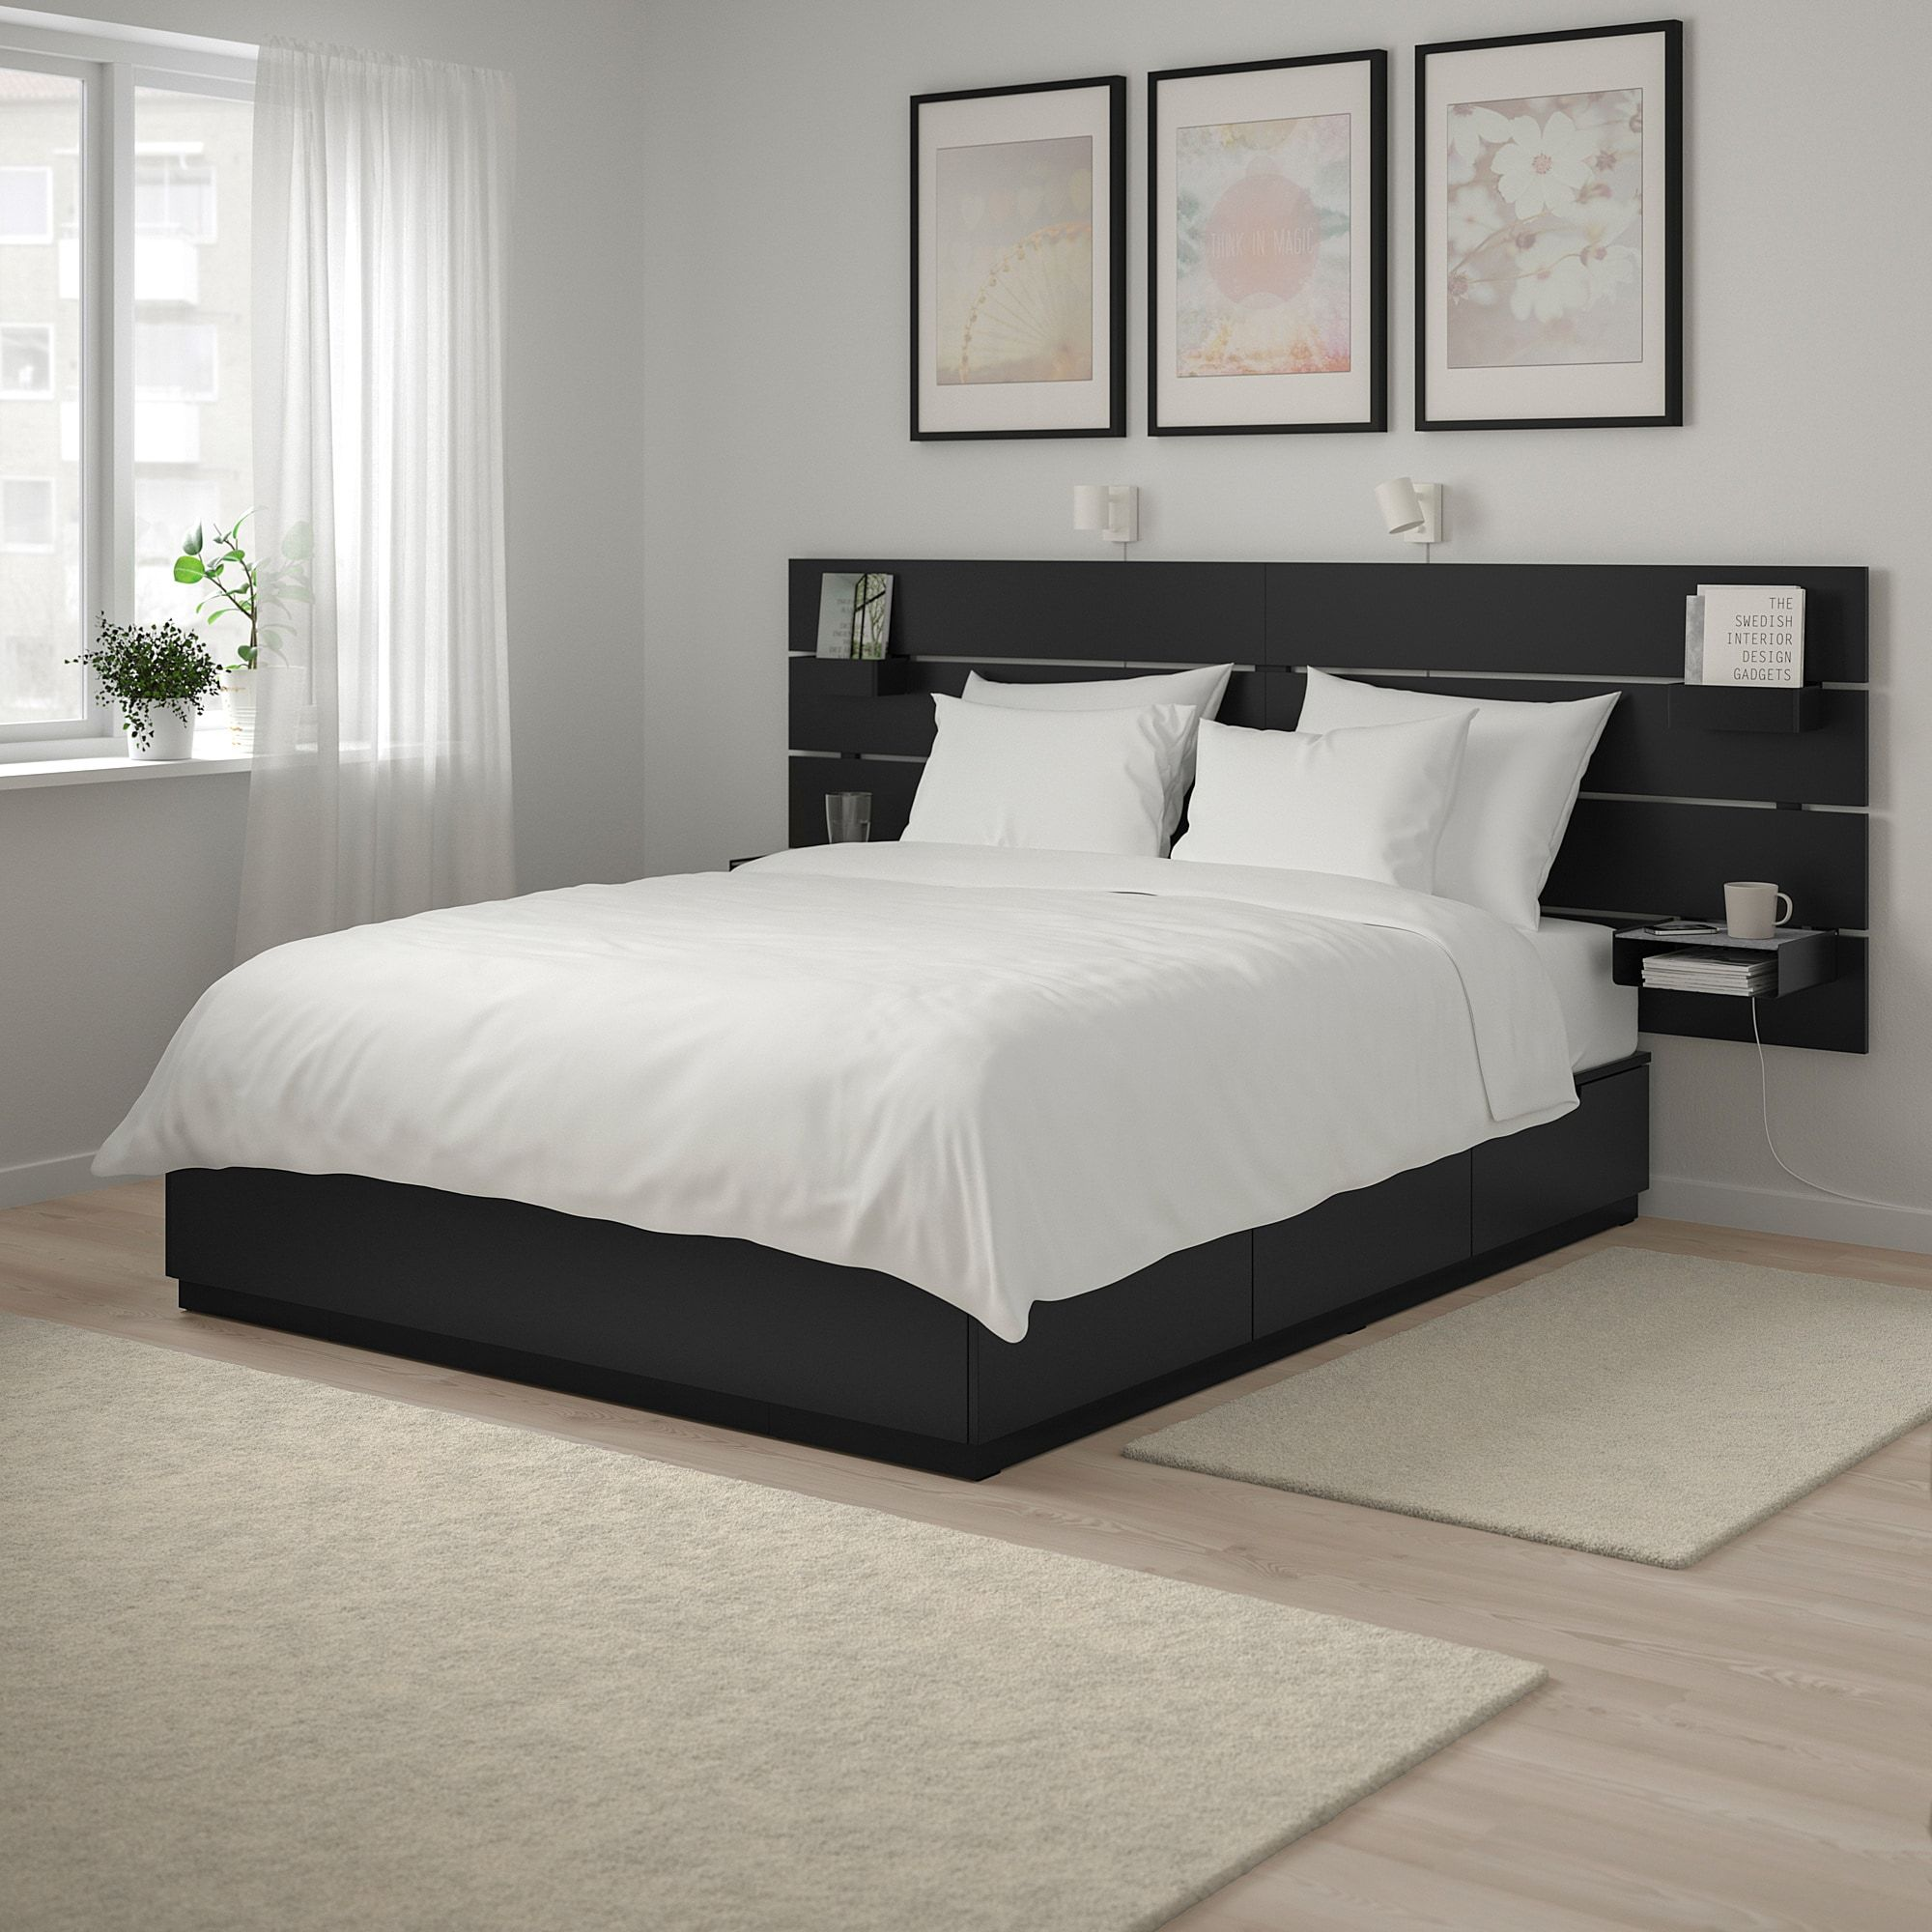 Ikea Möbel Nordli Ikea Nordli Anthracite Bed With Headboard And Storage In 2019